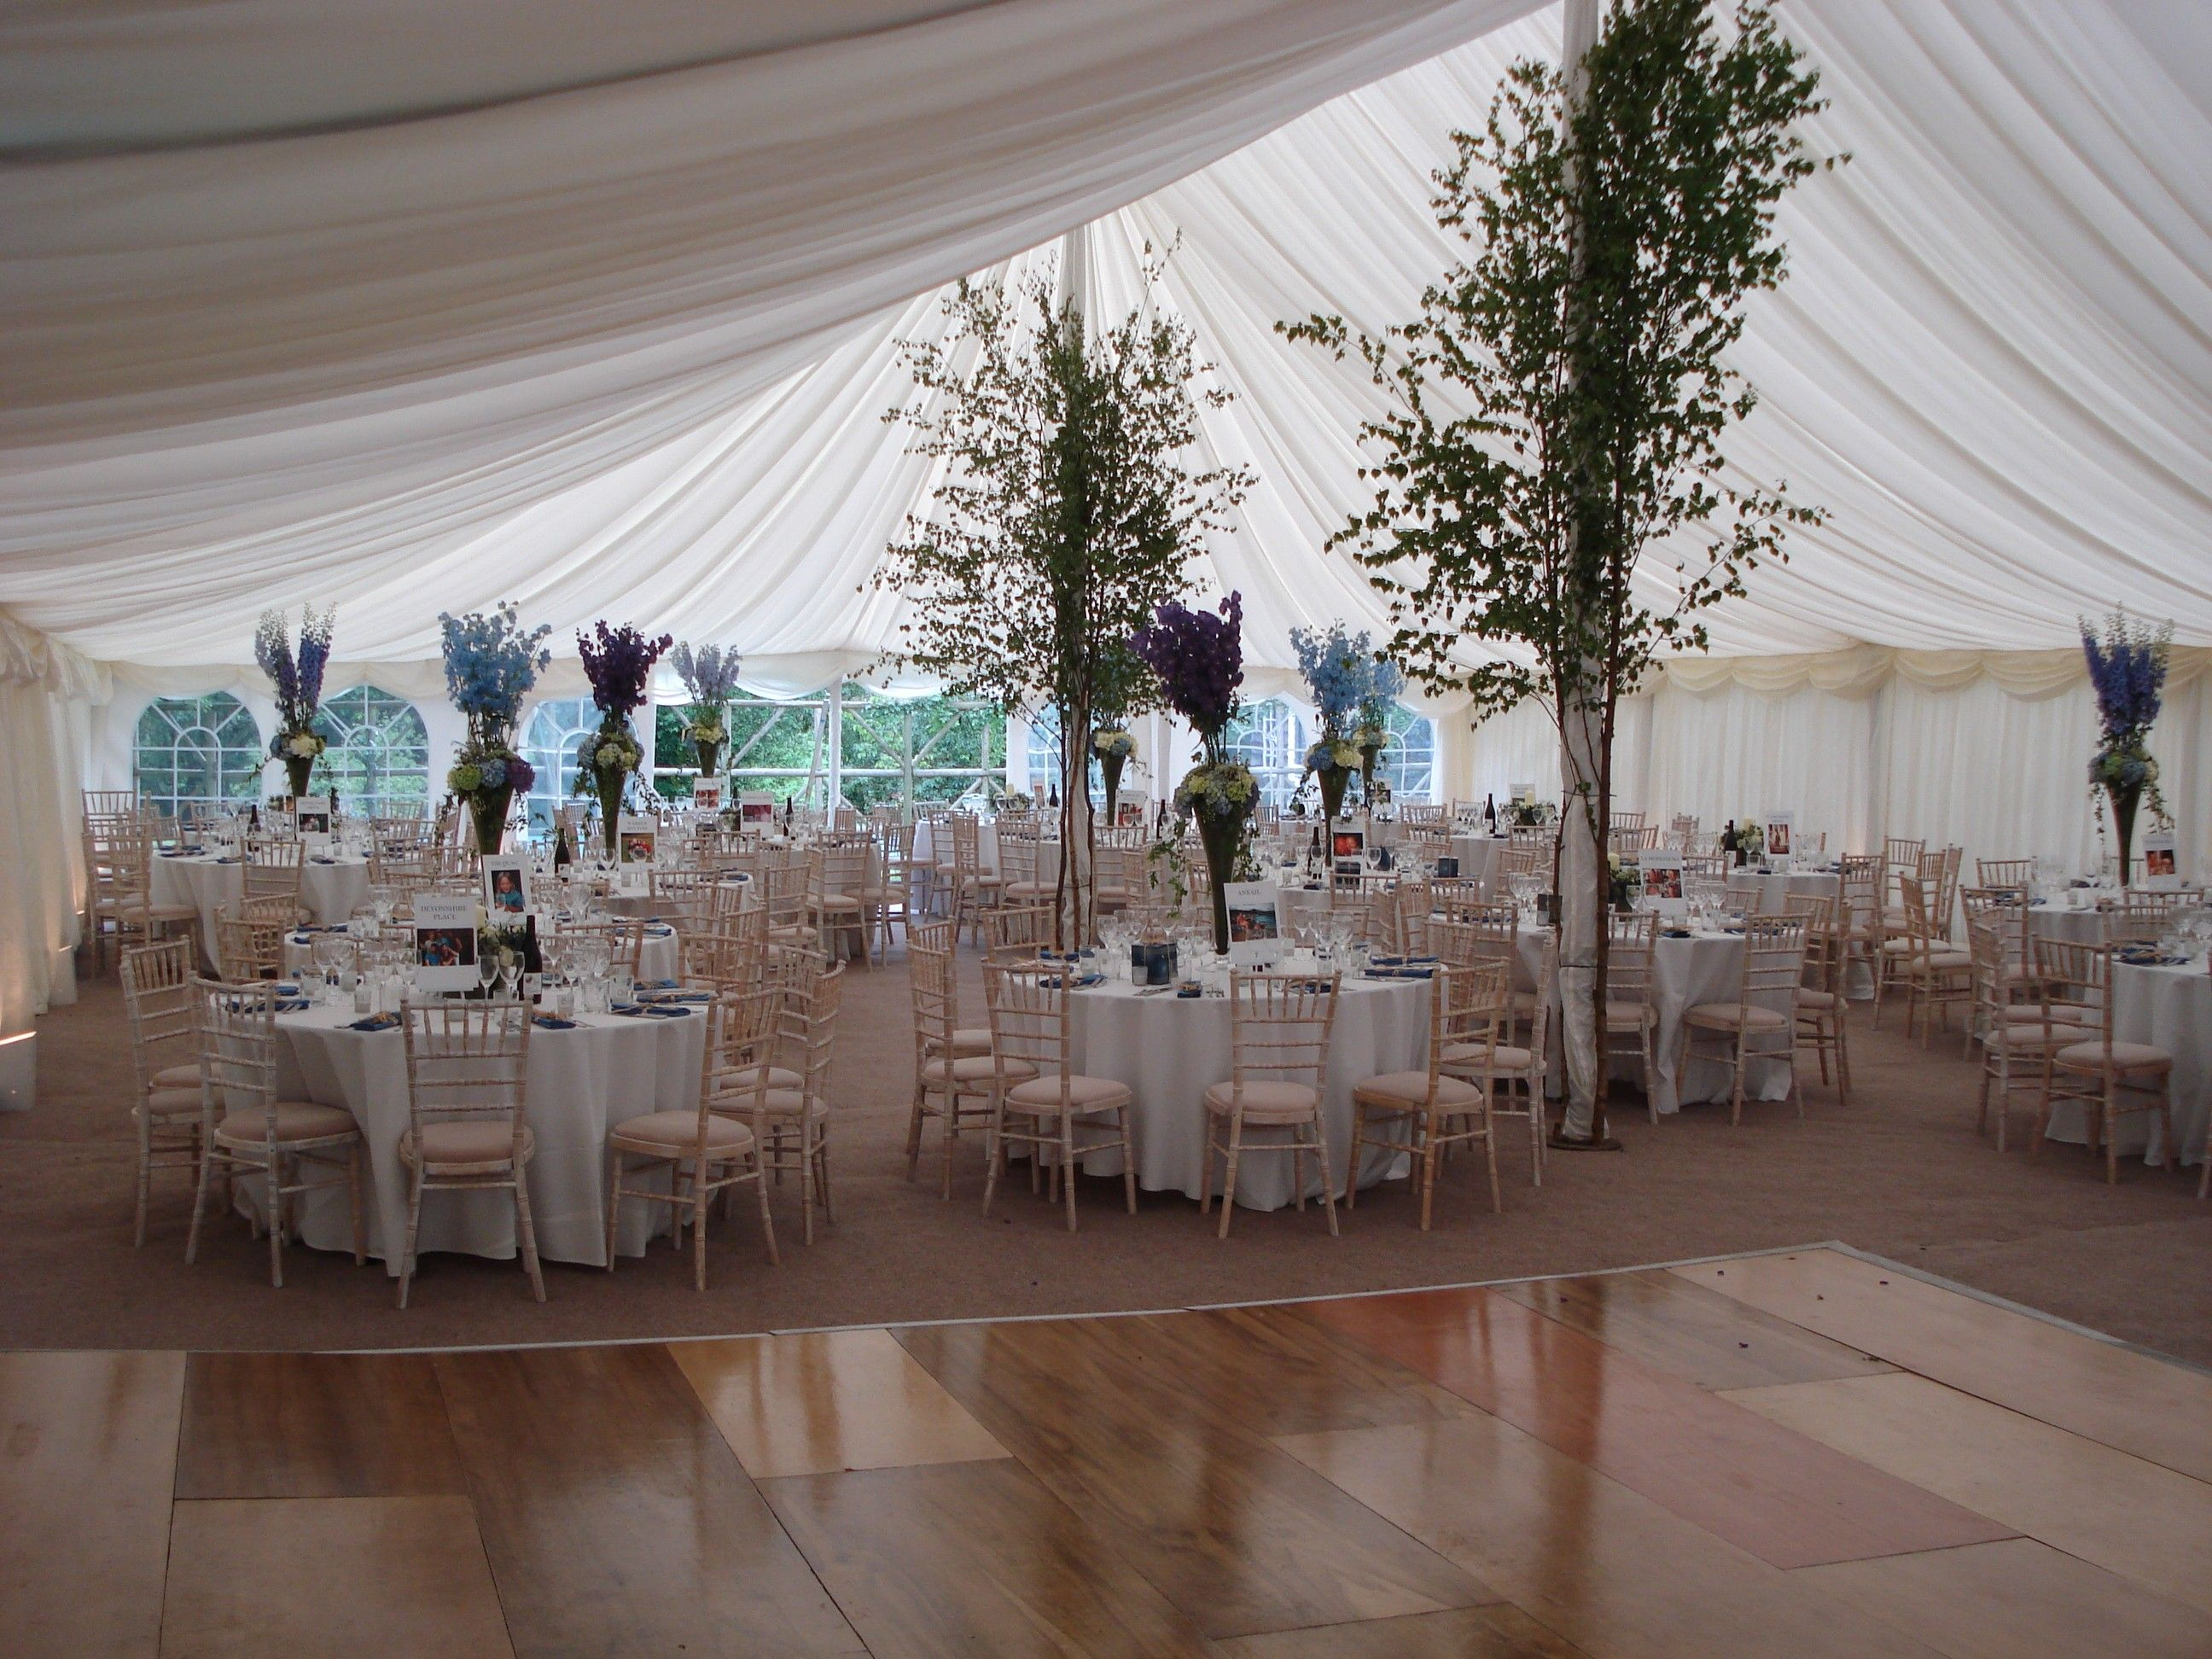 Bringing the outside in a beautiful feature of the support poles in alresford marquees specialises in marquee hire wedding marquees party marquees and corporate marquee hire across hampshire surrey sussex berkshire junglespirit Choice Image